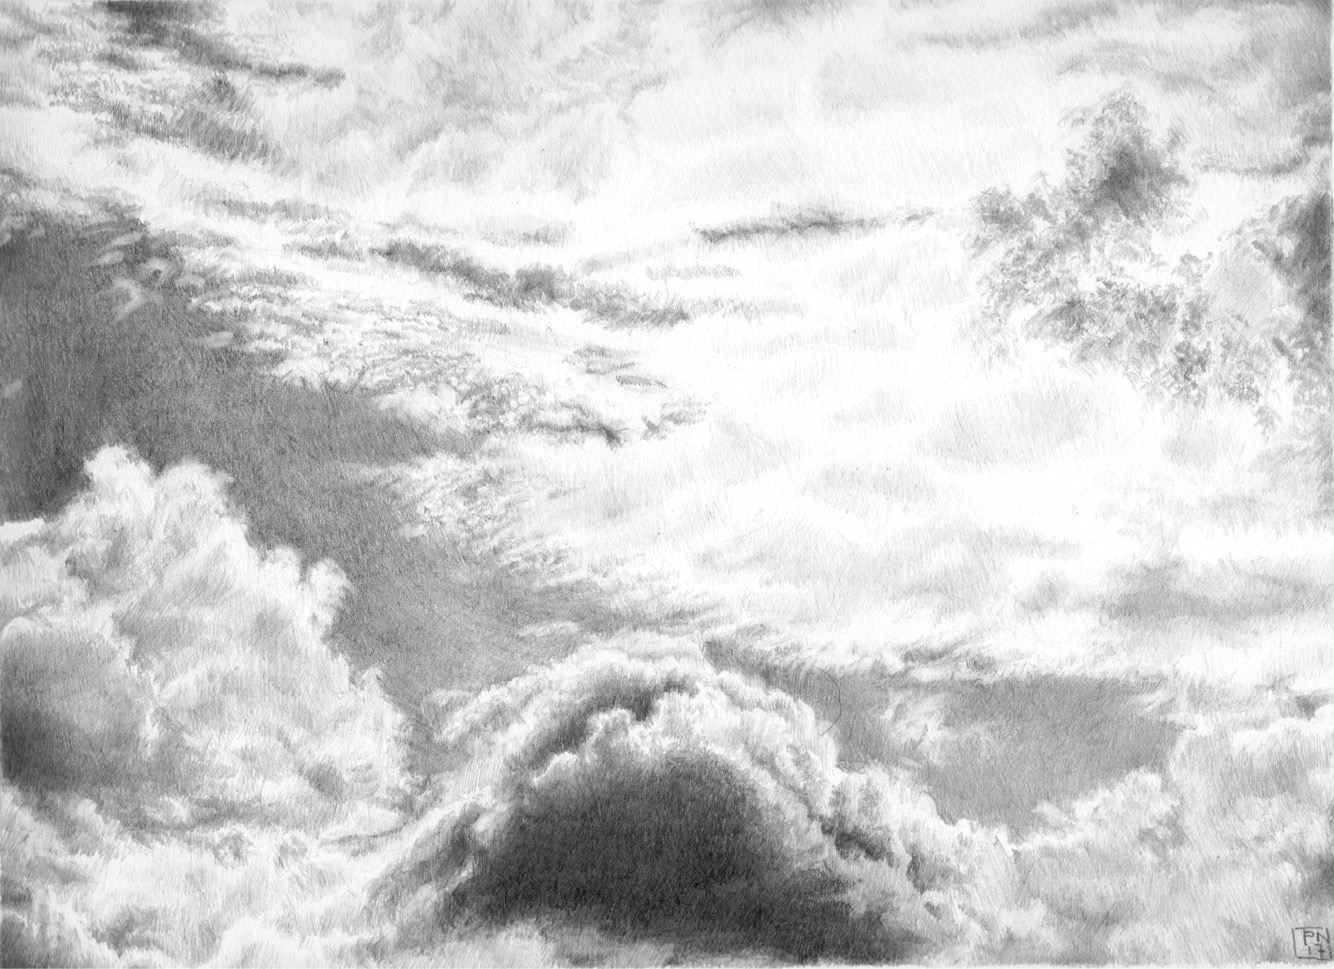 Cloud Study towards Ridge Hill